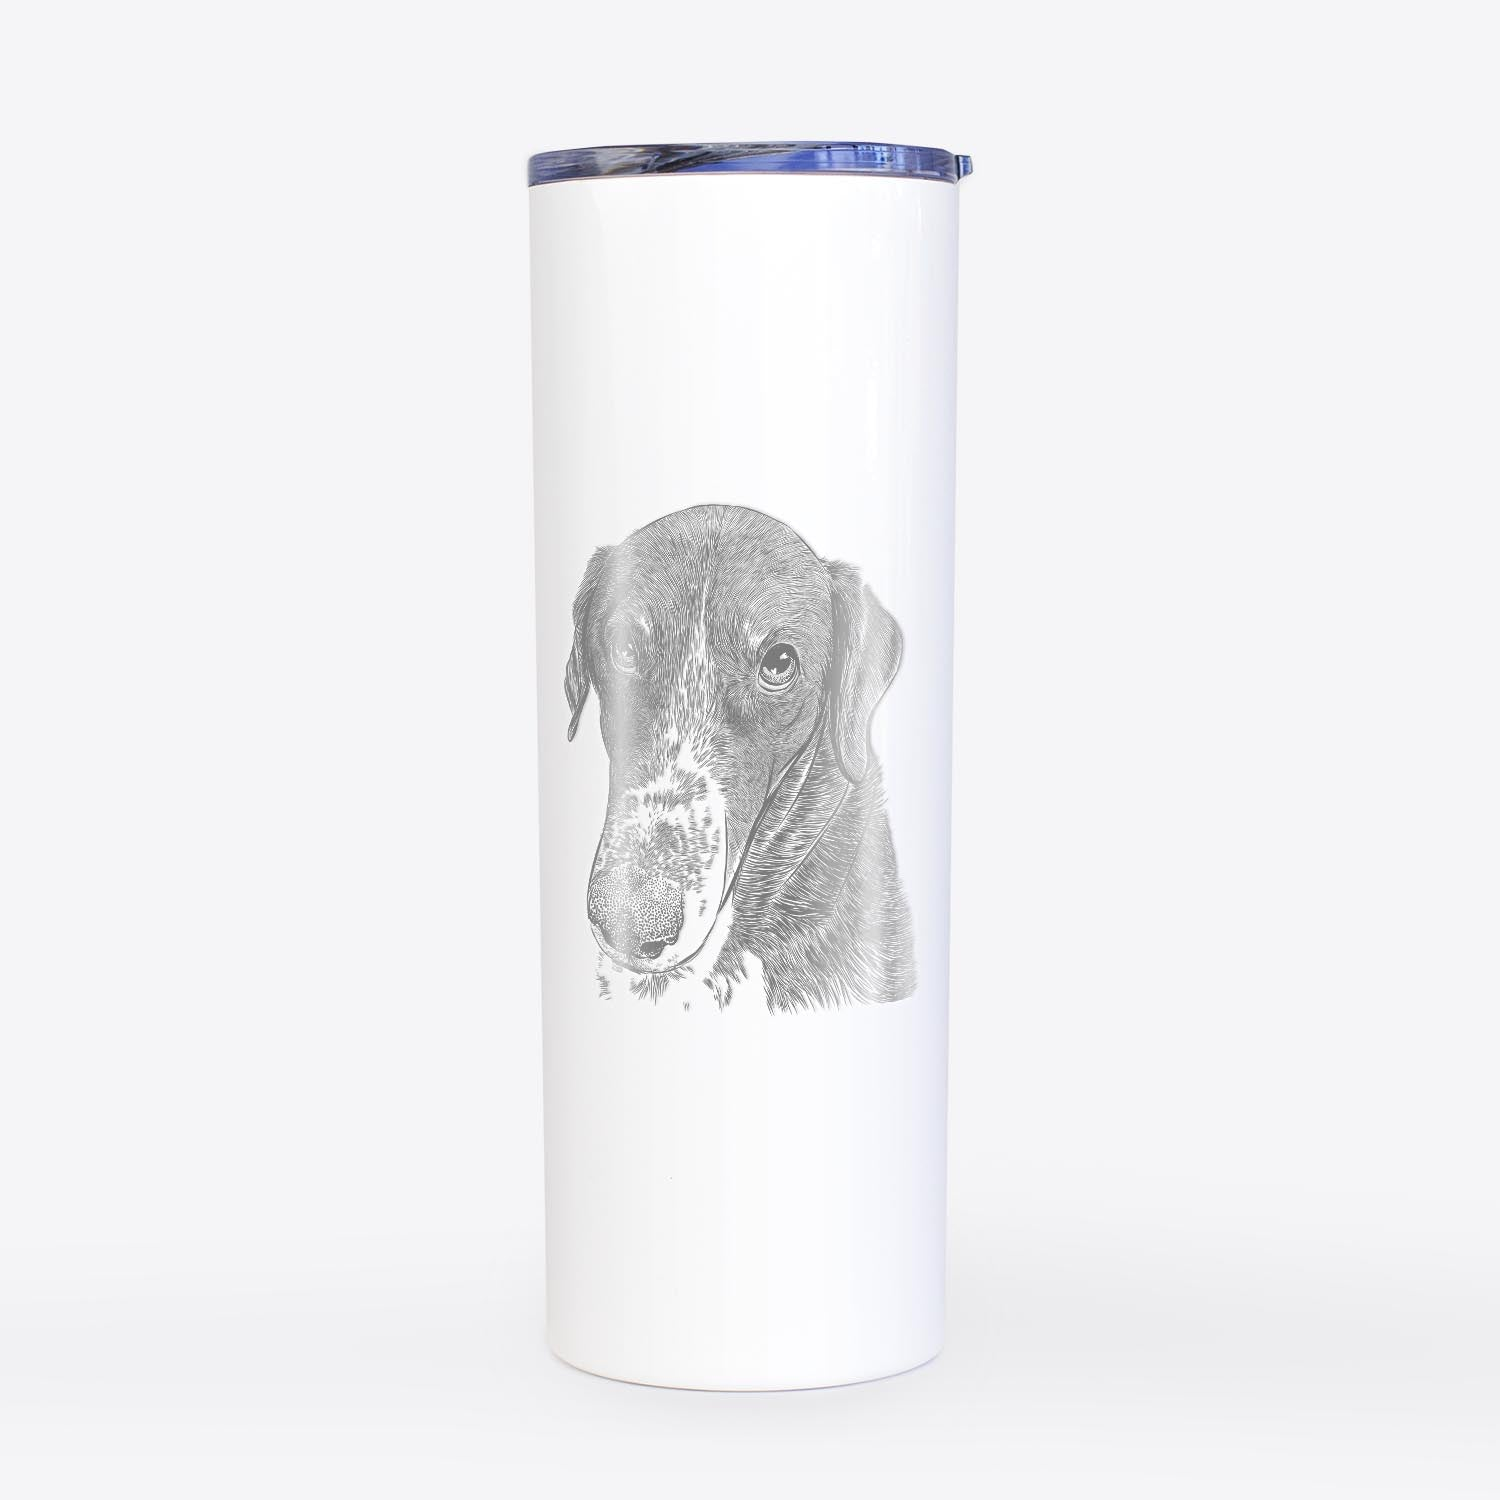 Angel Orion the Mixed Breed - 20oz Skinny Tumbler